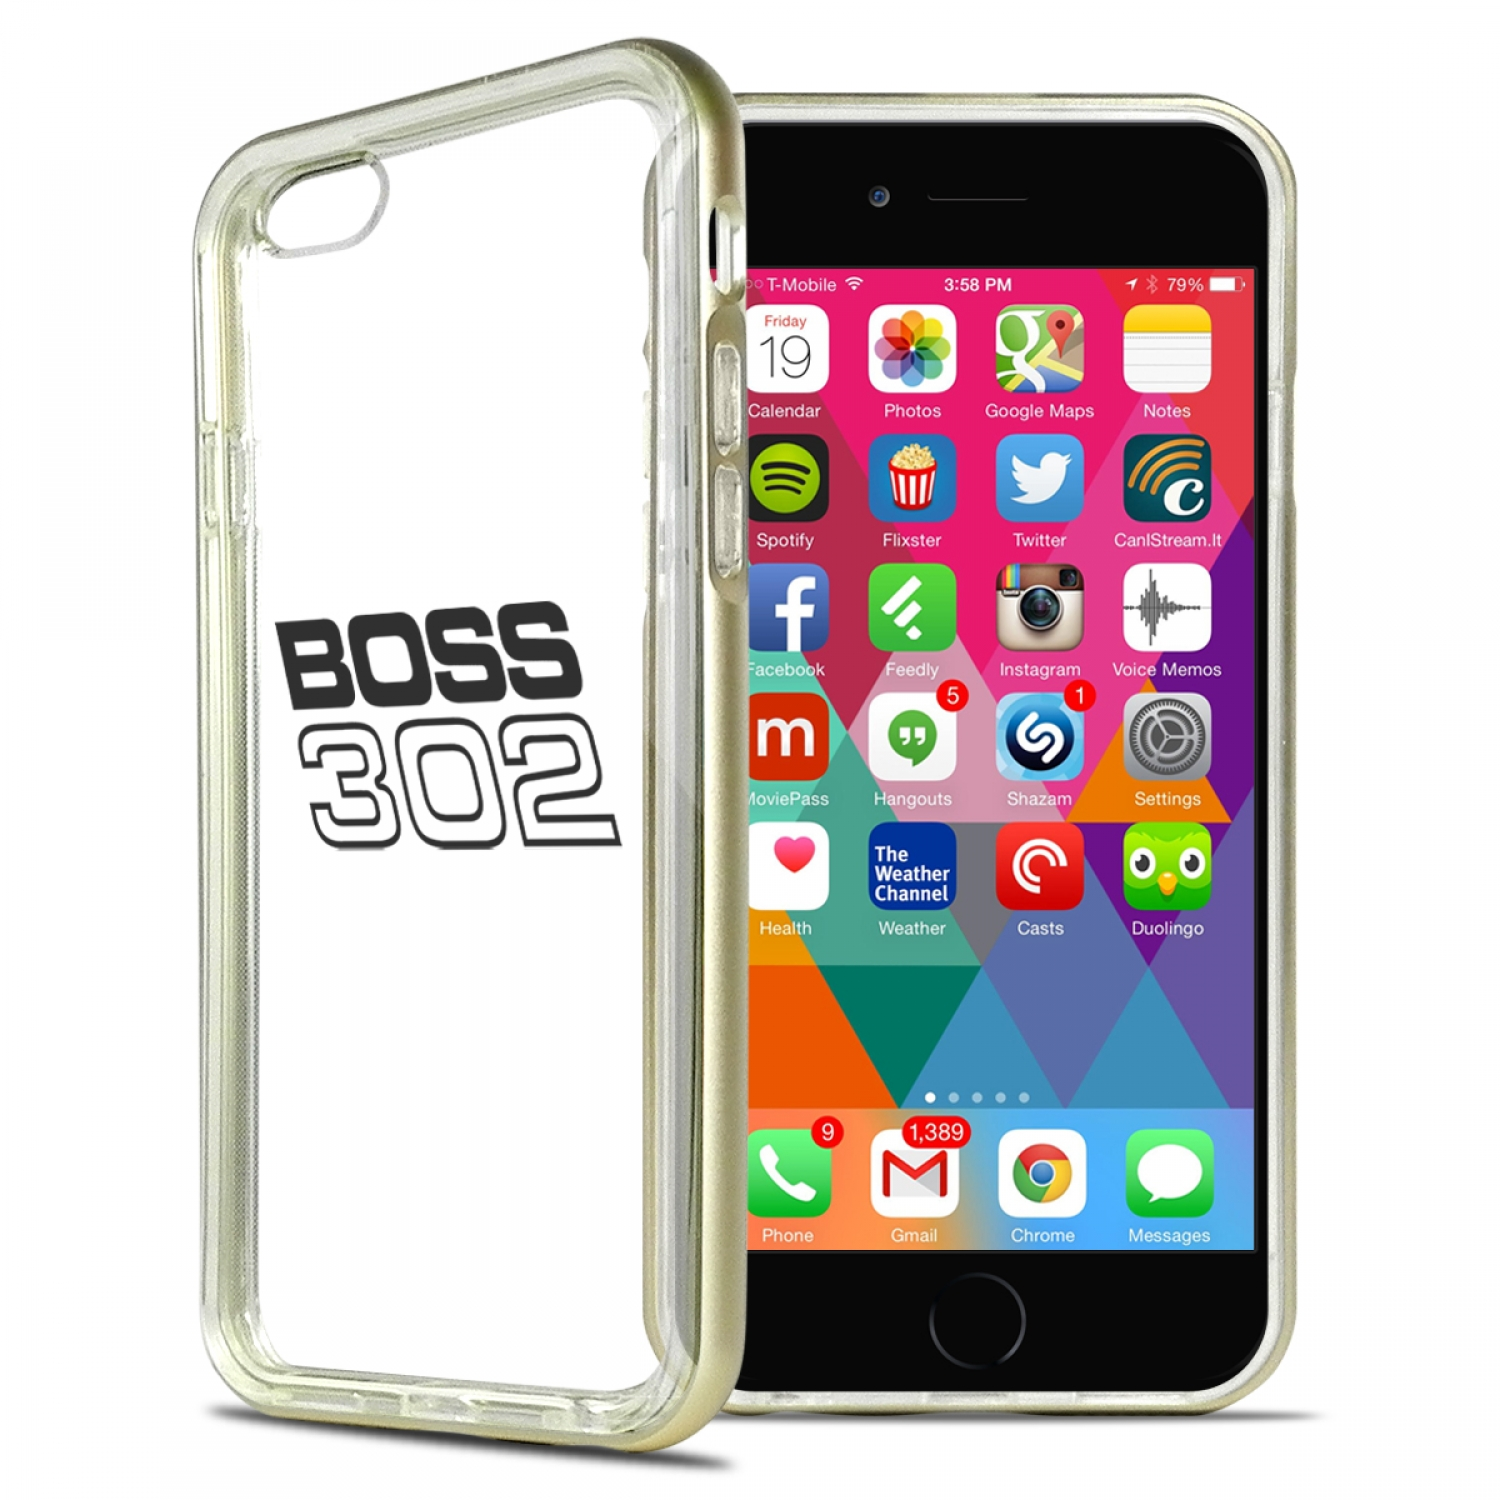 Ford Mustang Boss 302 iPhone 6 6s Shockproof Clear TPU Case with Gold Metal Bumper Hybrid Phone Case